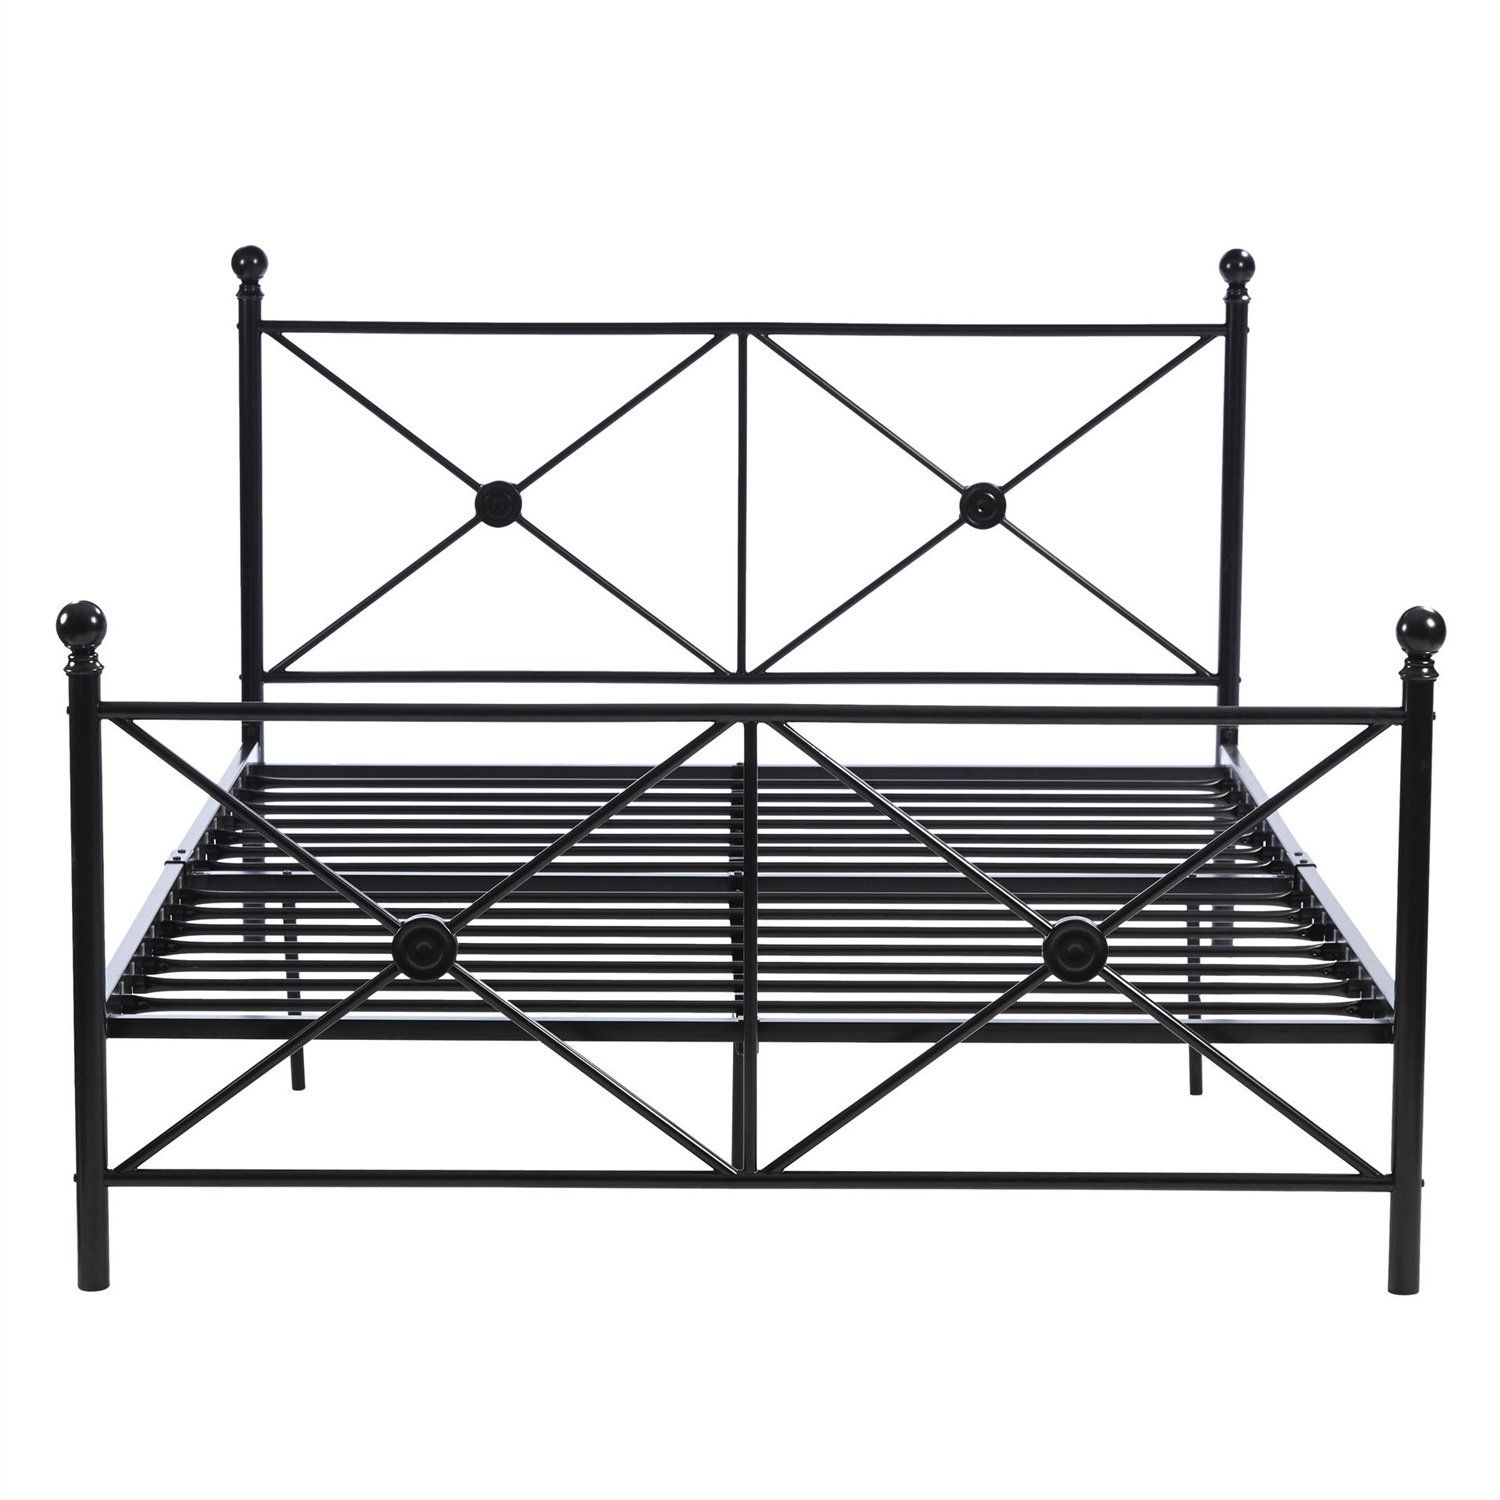 Queen size black metal platform bed frame with headboard and